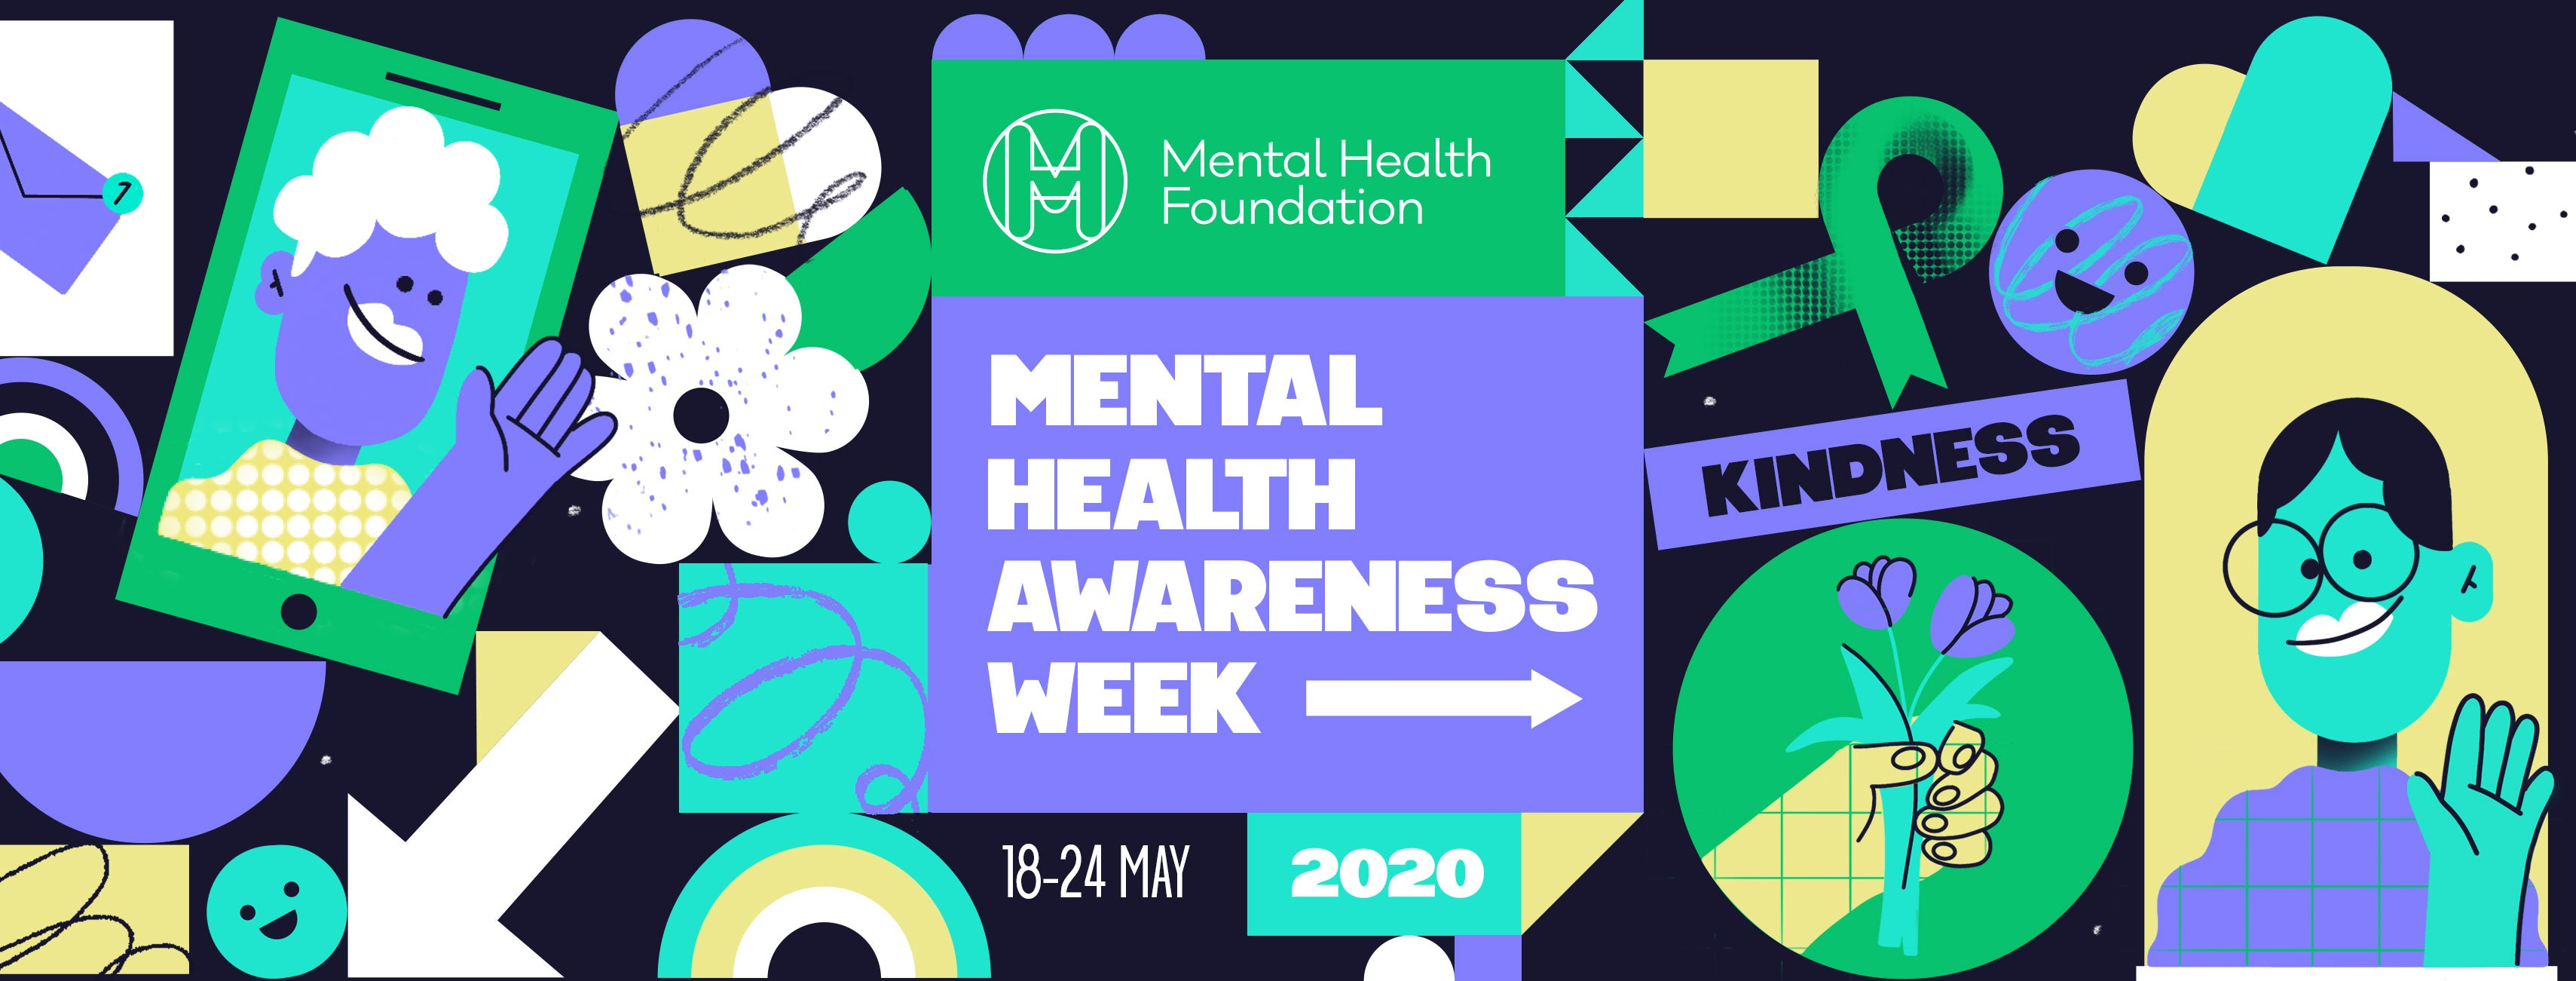 Mental Health Awareness Week 2020 logo